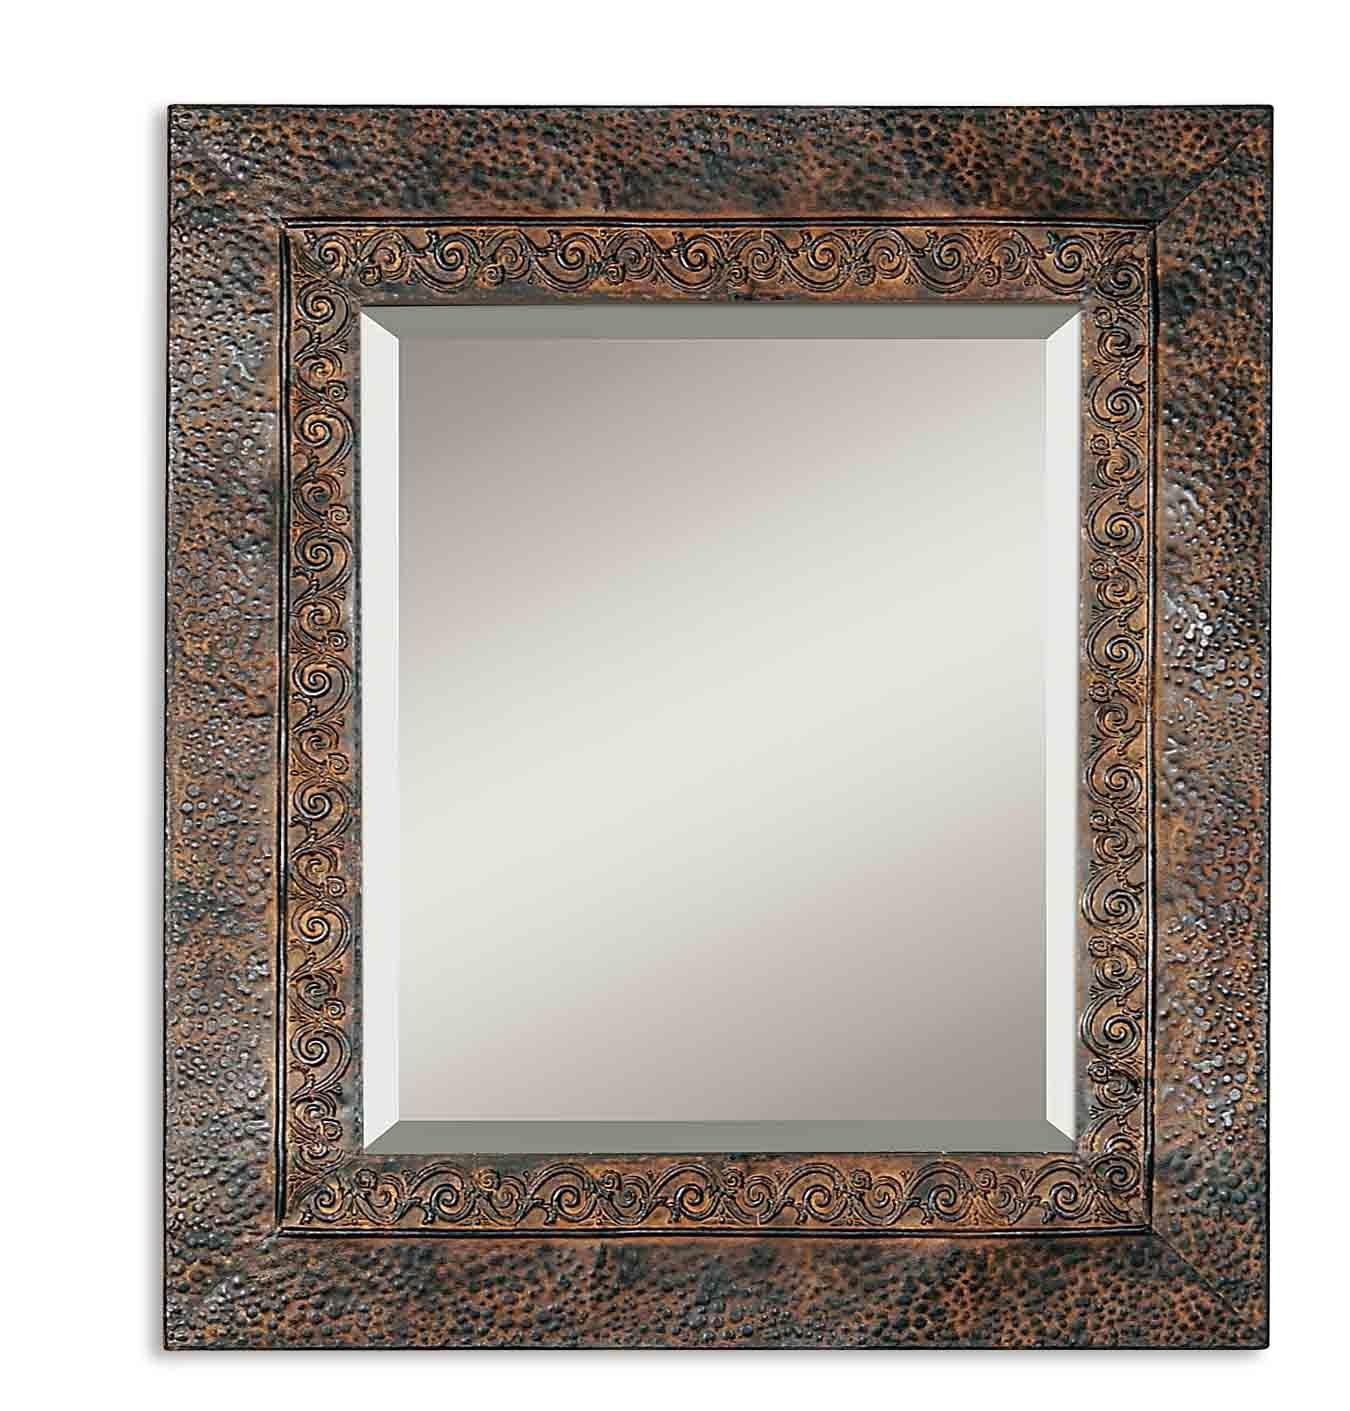 Uttermost Jackson Rustic Metal Mirror 11182 B Regarding Iron Framed Mirror (Photo 11 of 20)